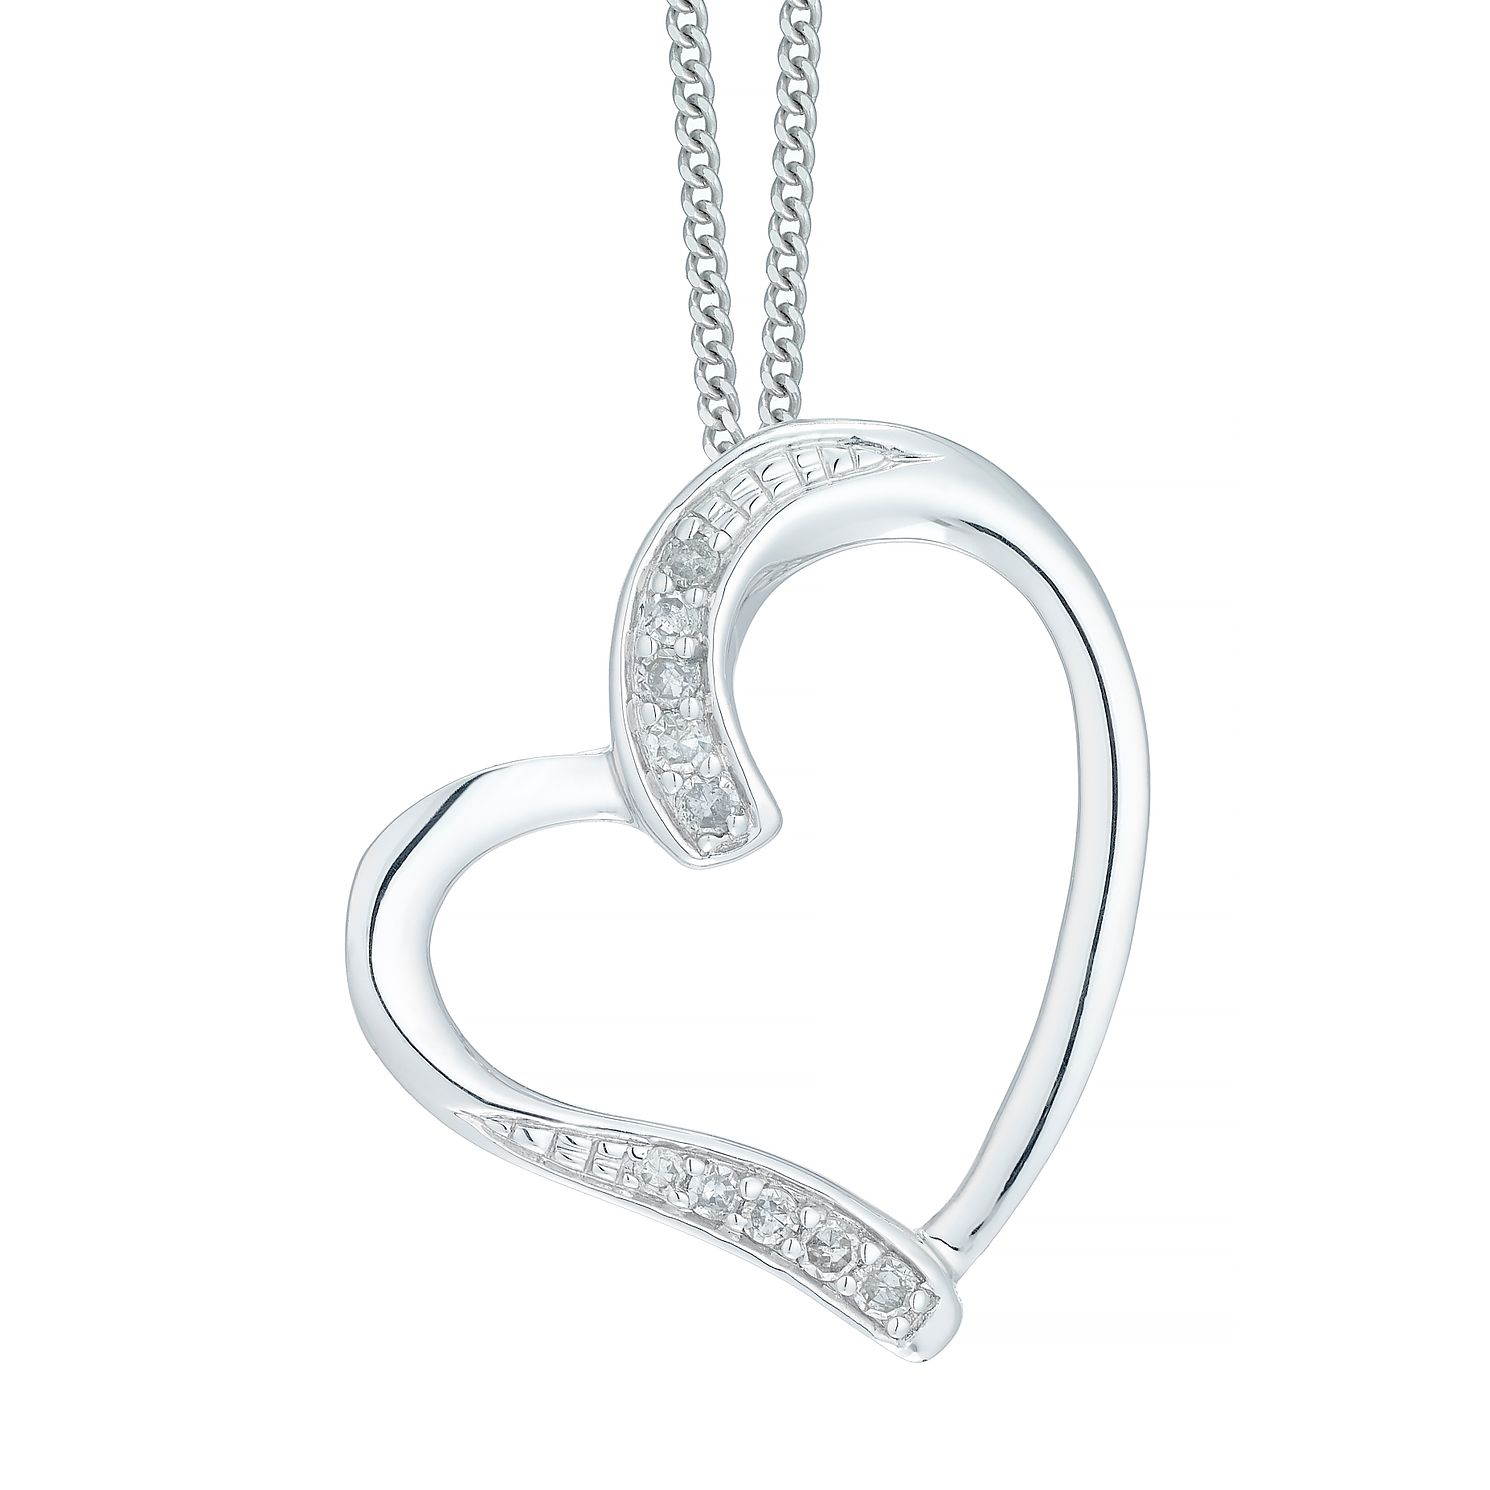 jewellery you com sterling silver only my necklace are in the amazon heart clothing dp pendant one